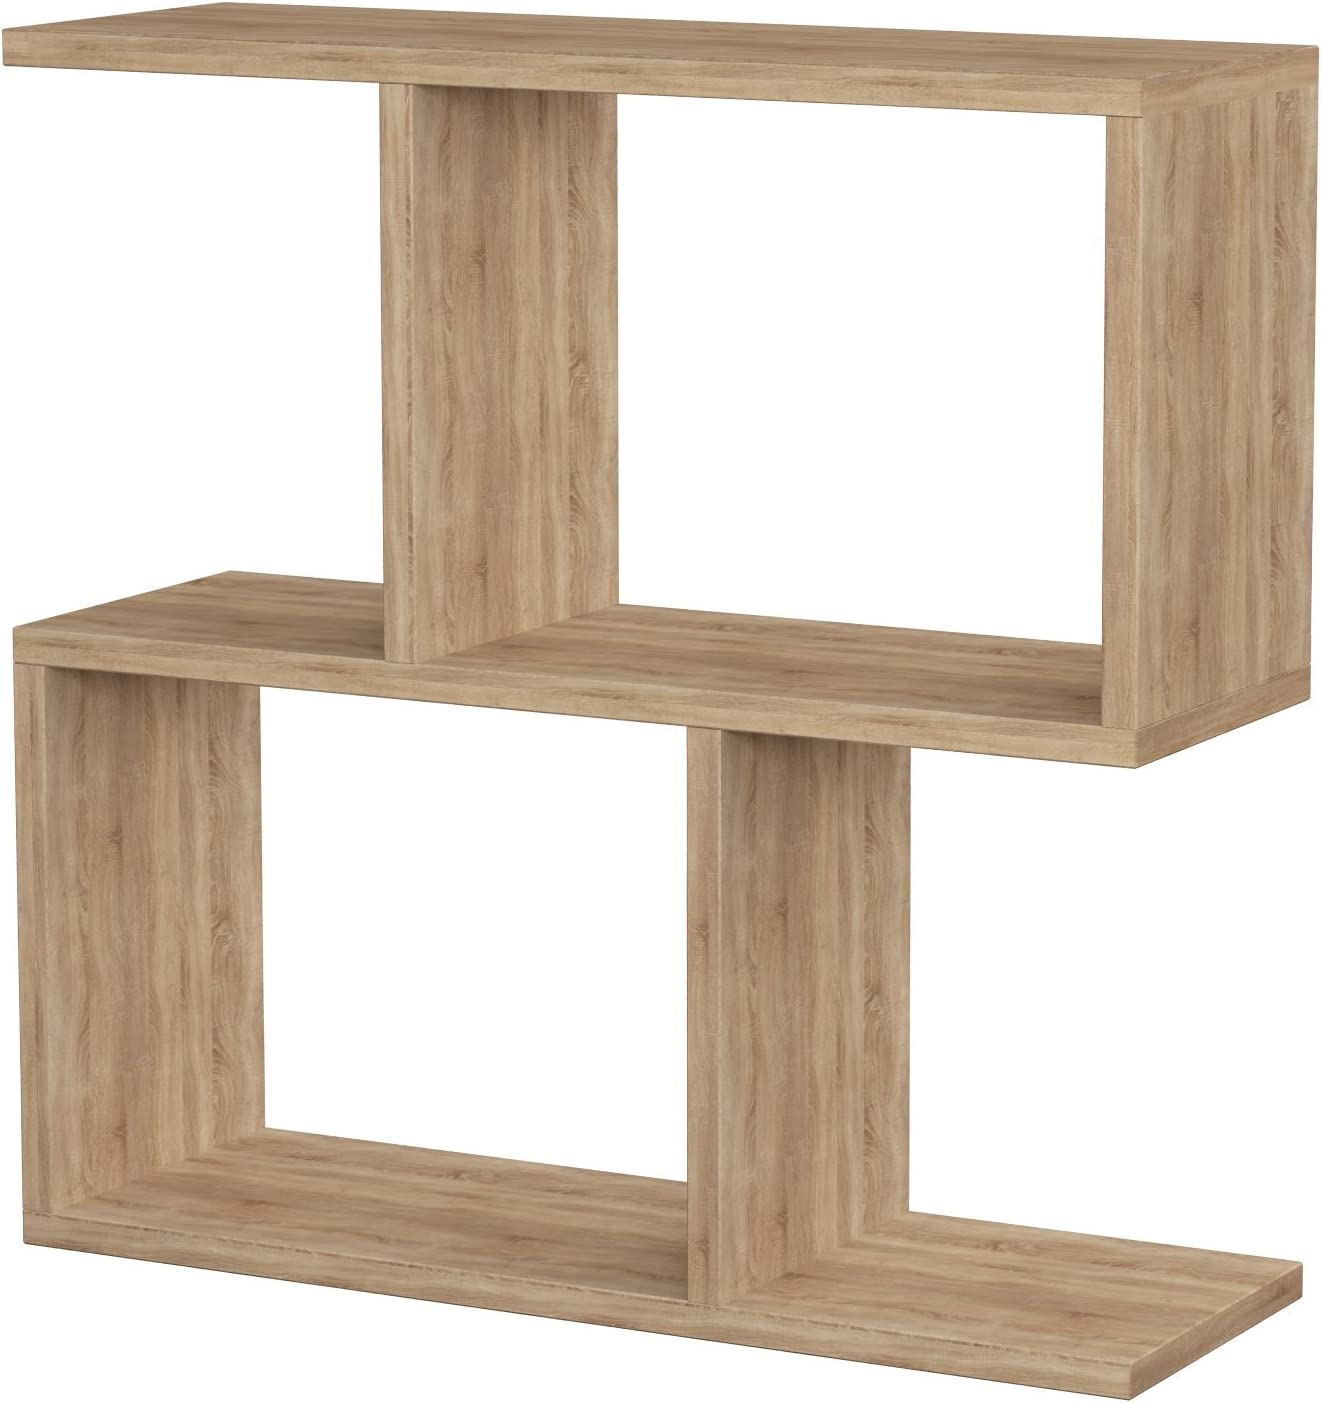 Hocuspicus 2 Tier Storage Side Table Many Colour Options Oak 60x60x20cm Shelves Organizer Office Living Room End Desk Stand Display